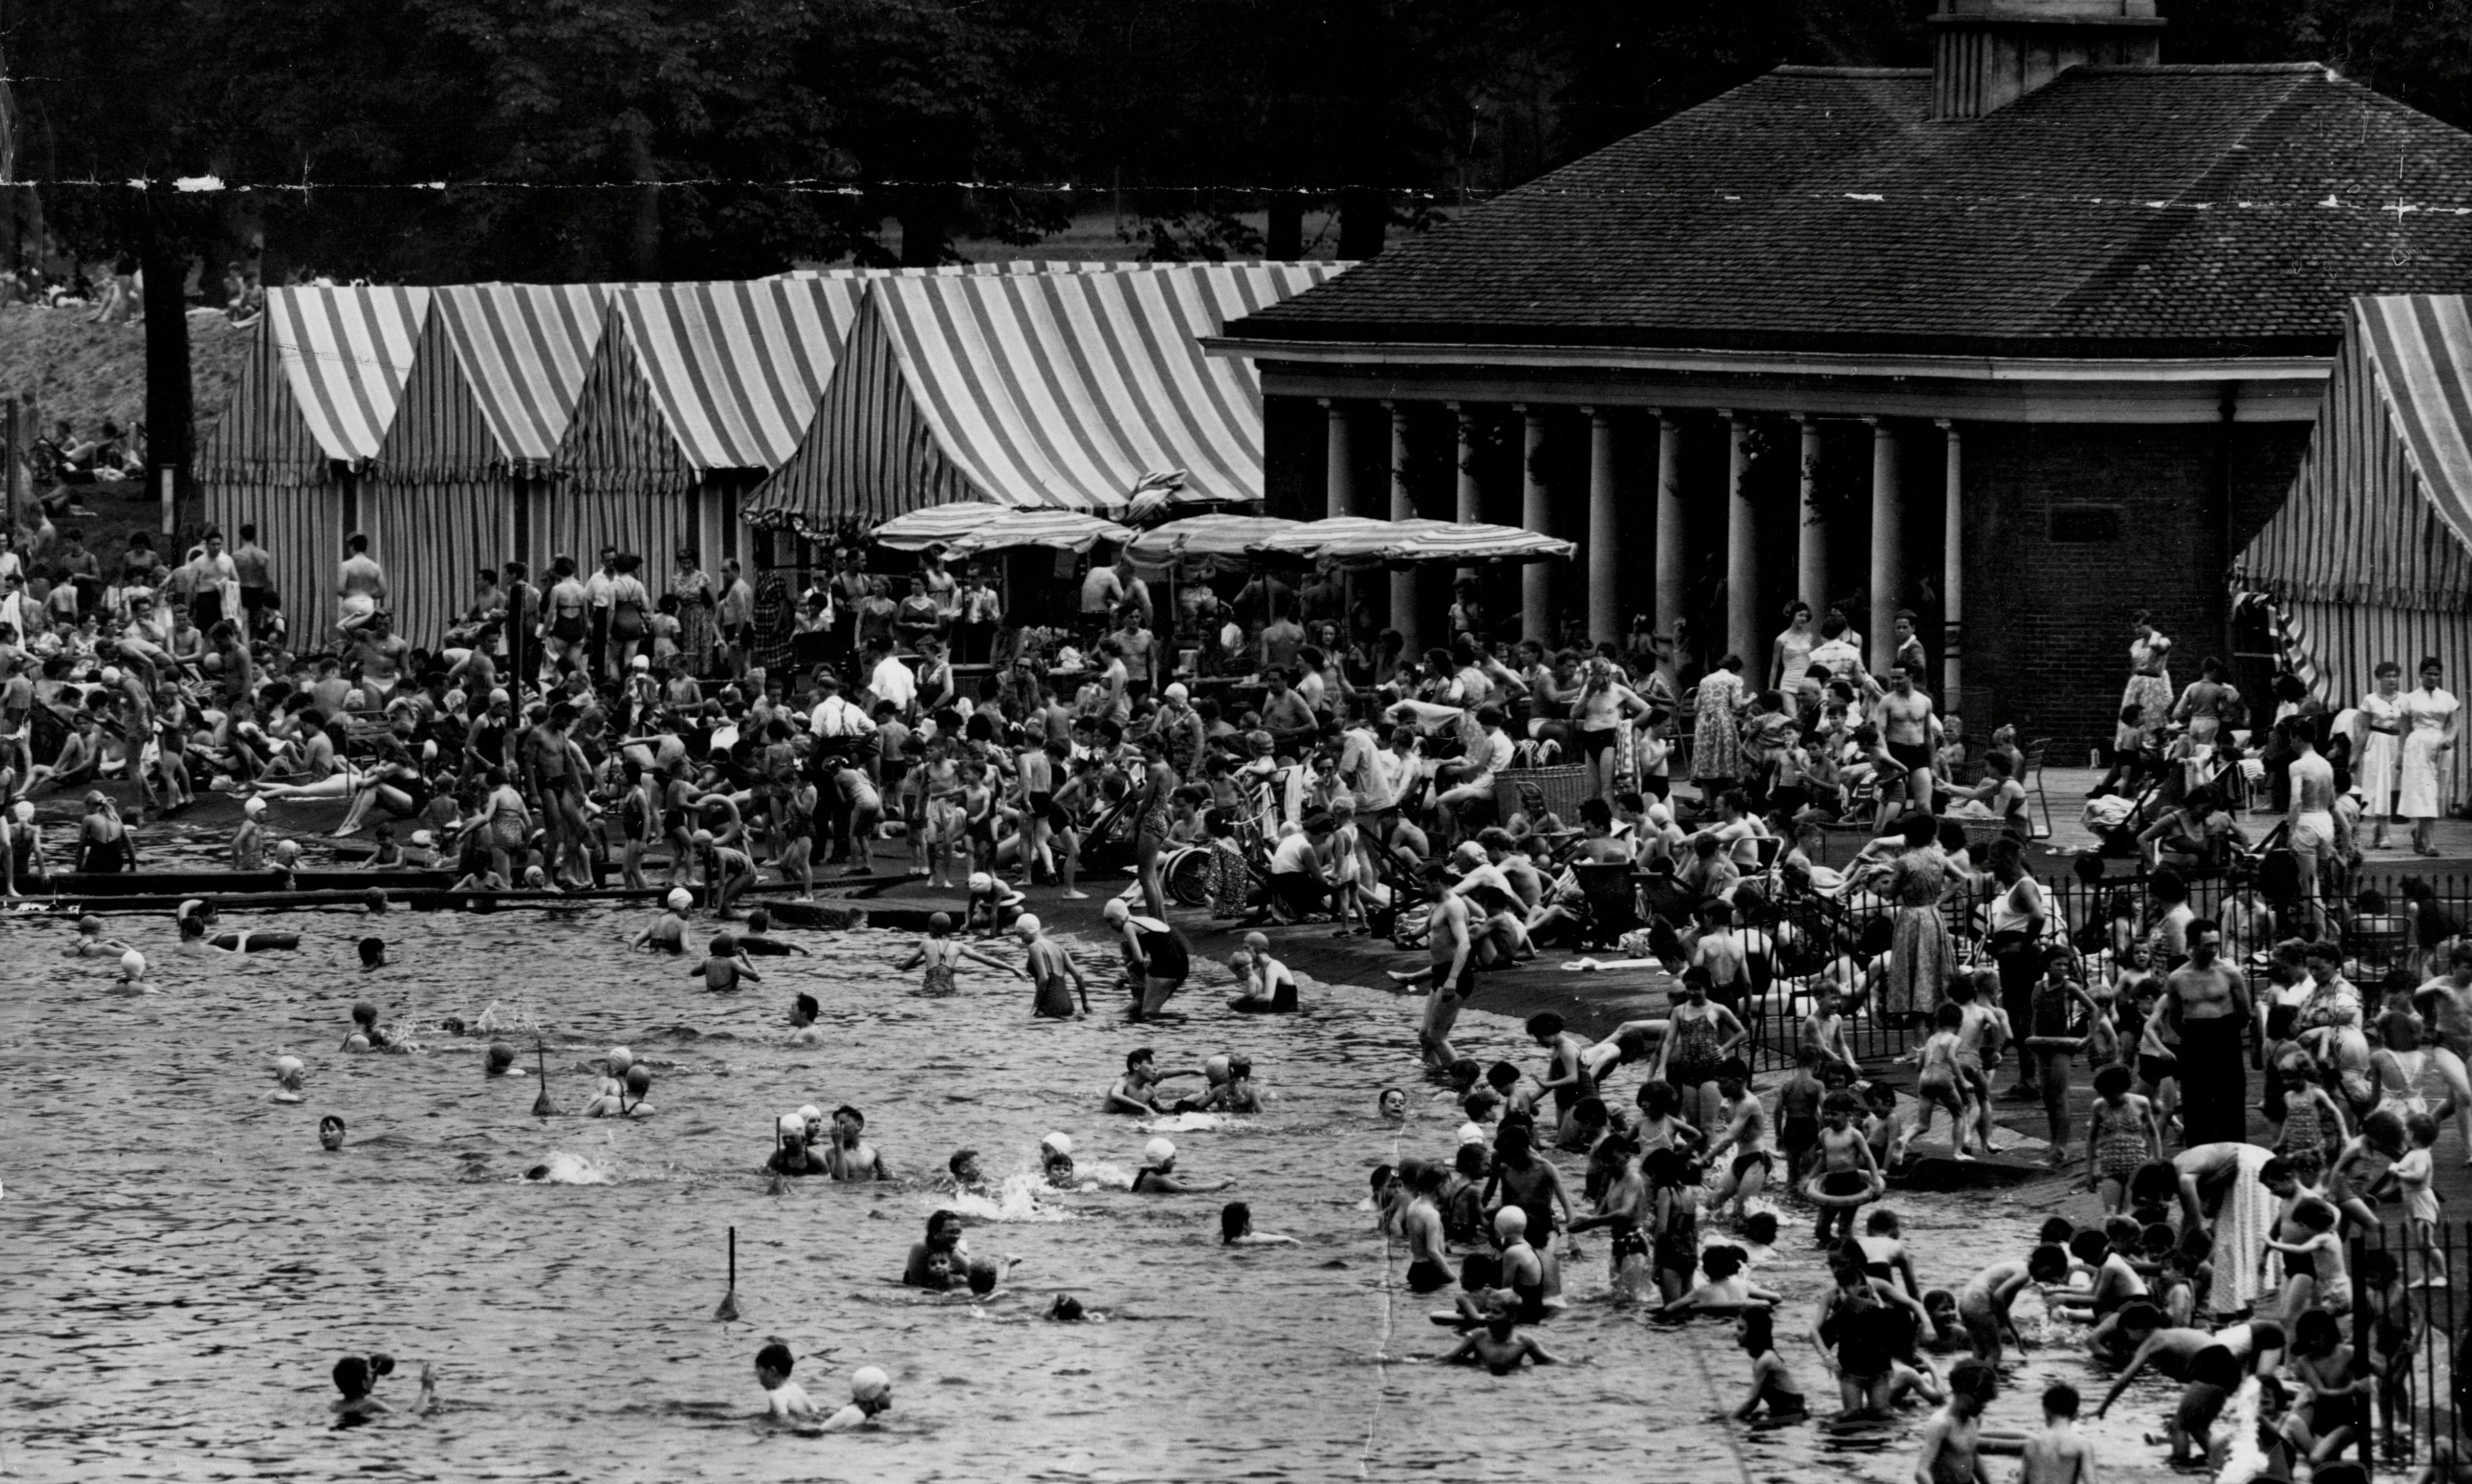 London's public swimming pools: bathing, sun terraces and cafes - archive, 22 August 1938